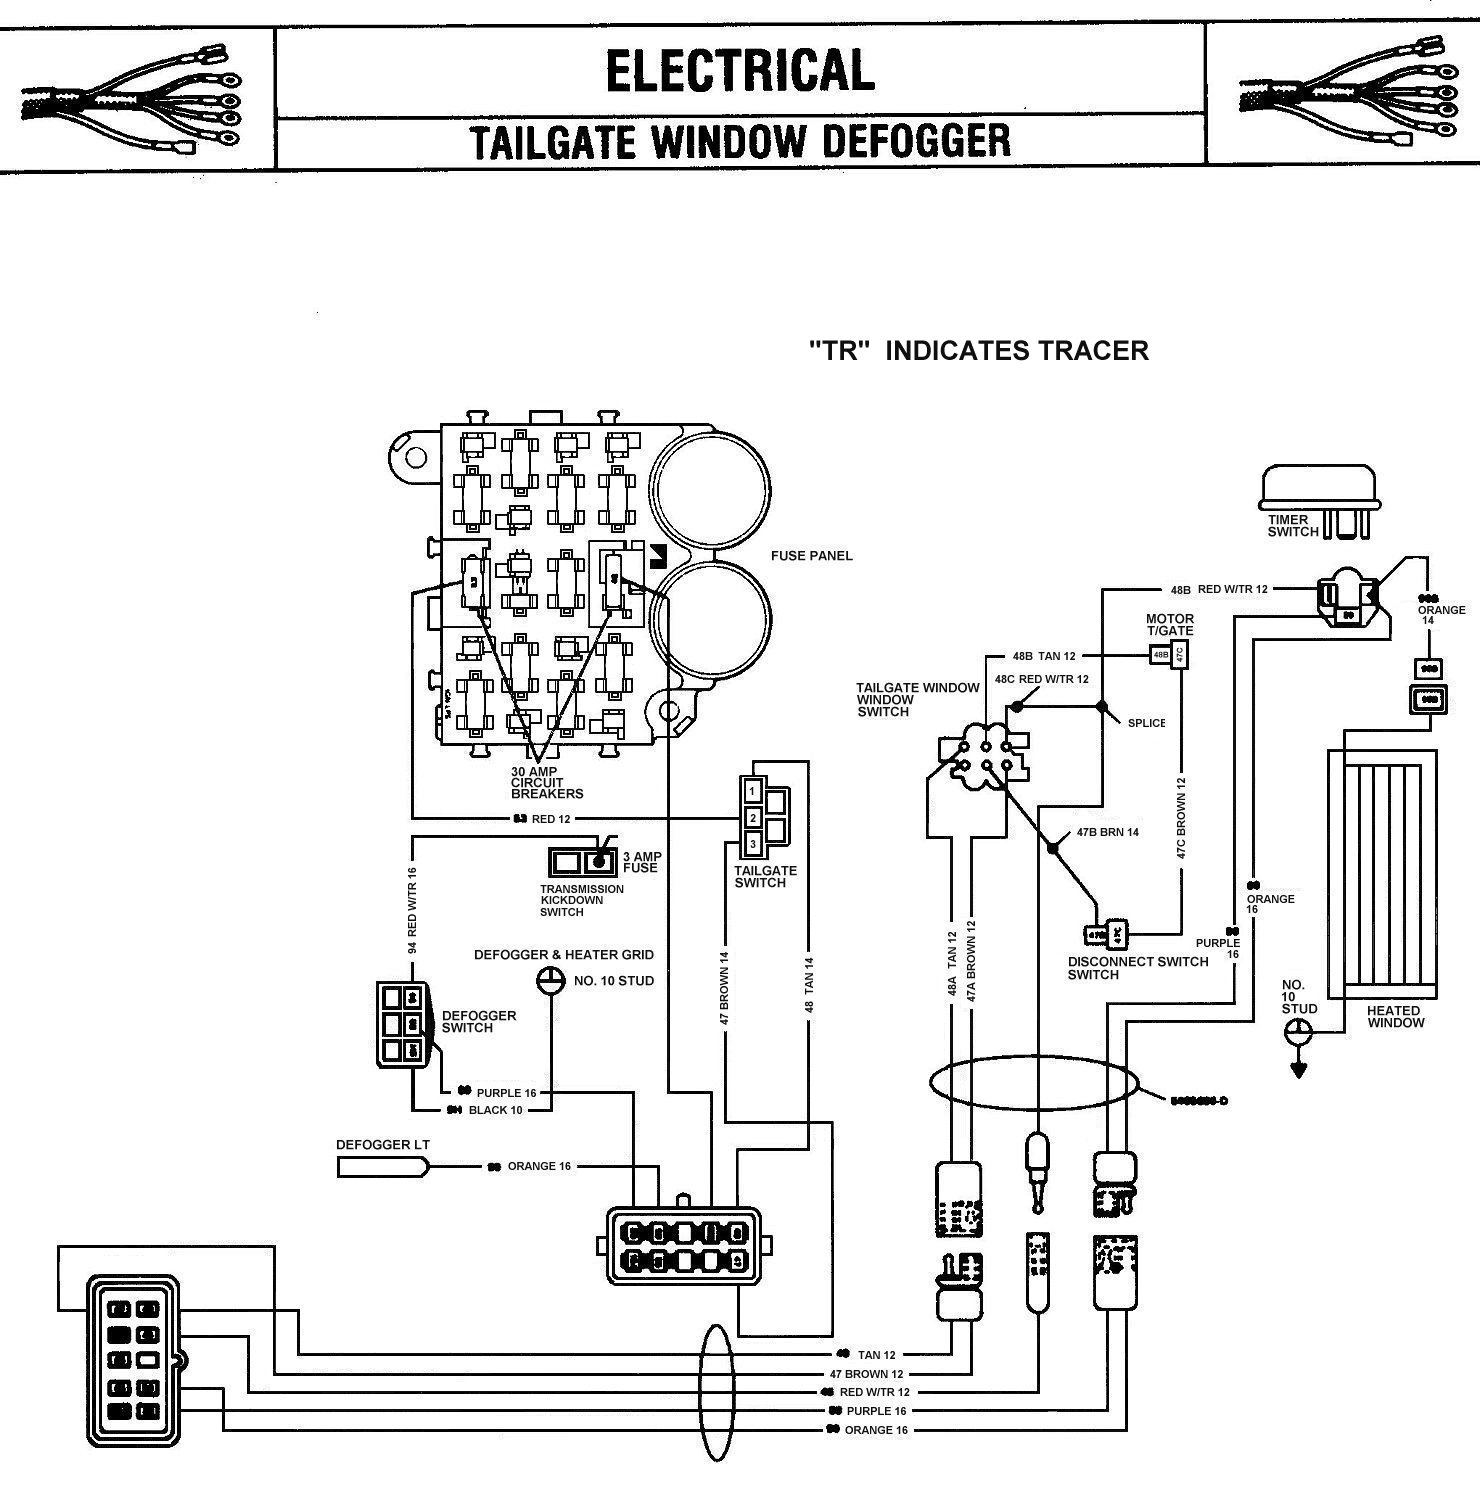 2001 Toyota Camry Rear Window Defroster Schematic Wiring Diagram Jeep Grand Wagoneer Wiringdiagram Details